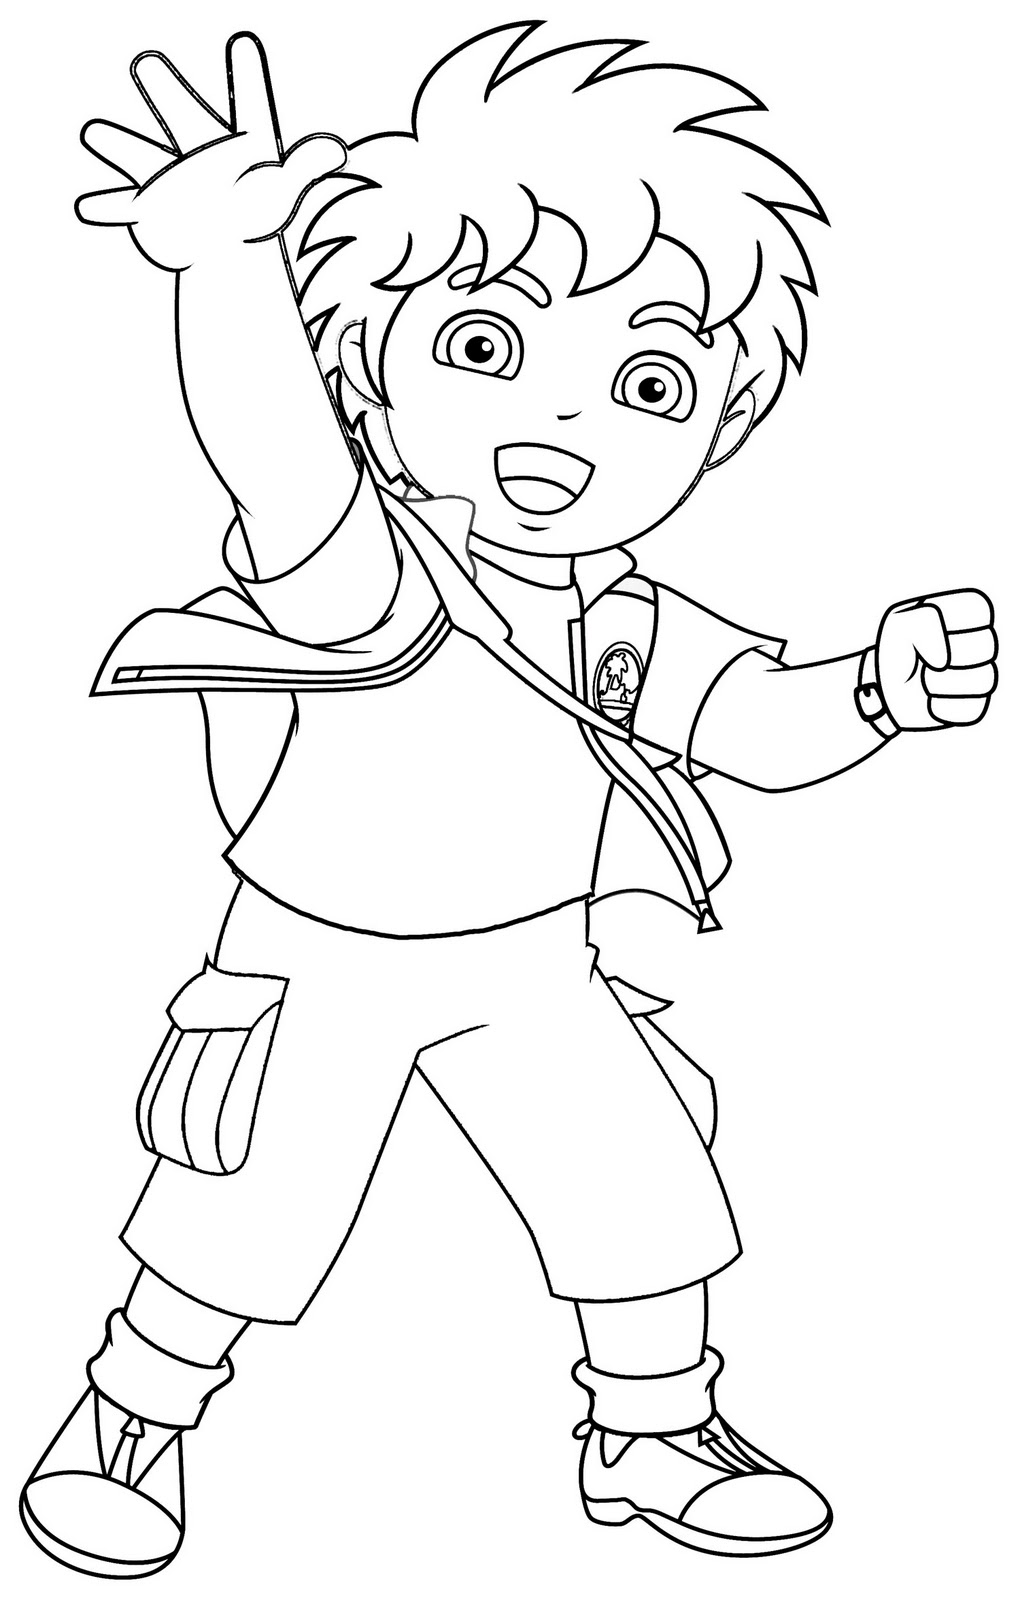 diego coloring pages 14 diego coloring page to print print color craft pages coloring diego